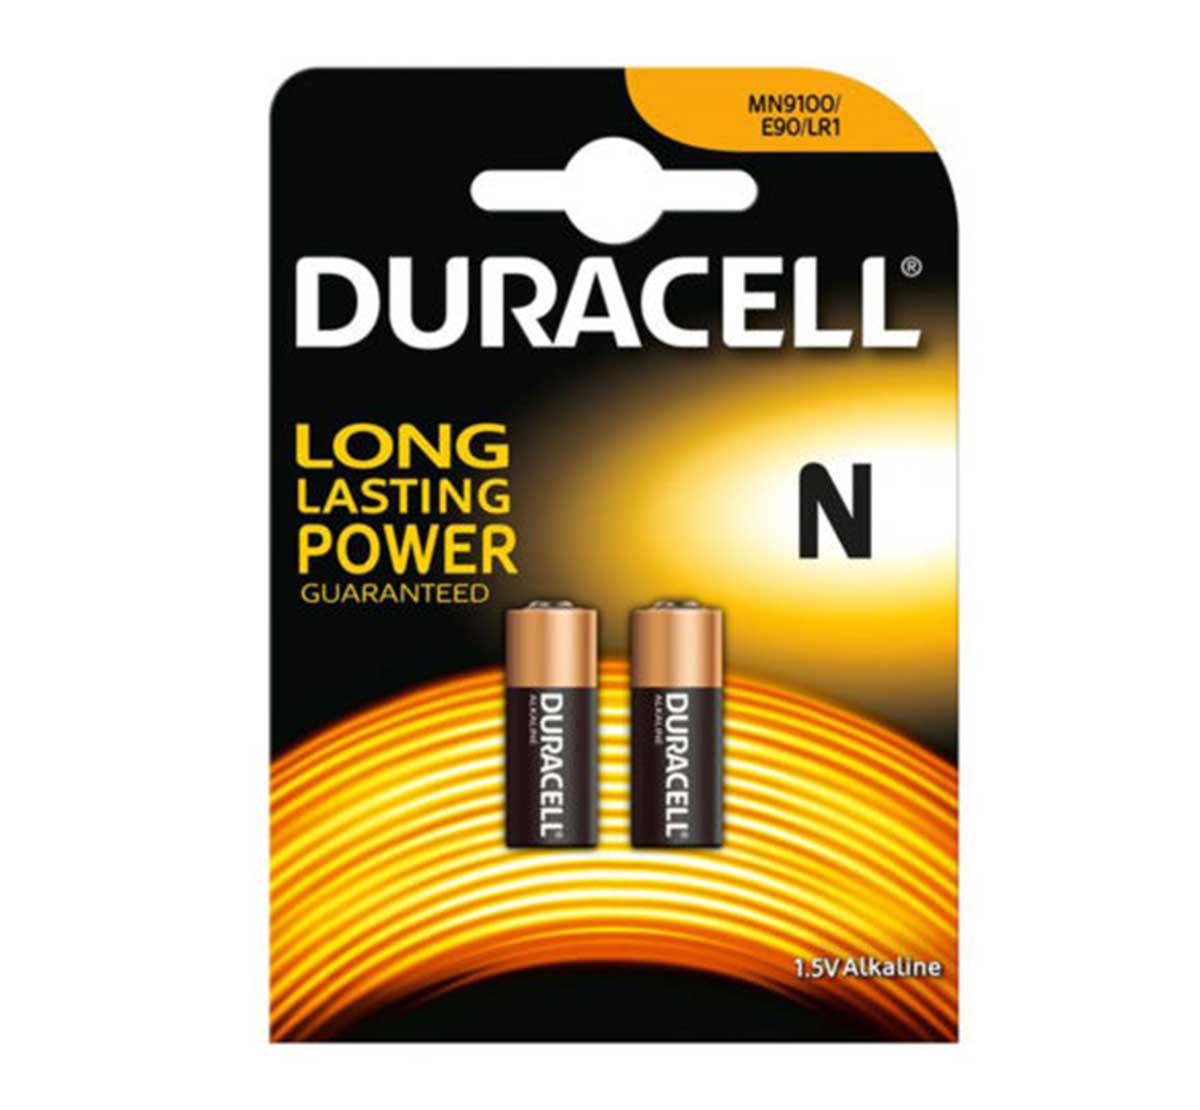 Duracell Batteries MN9100 N LR1 Battery Pack of 2